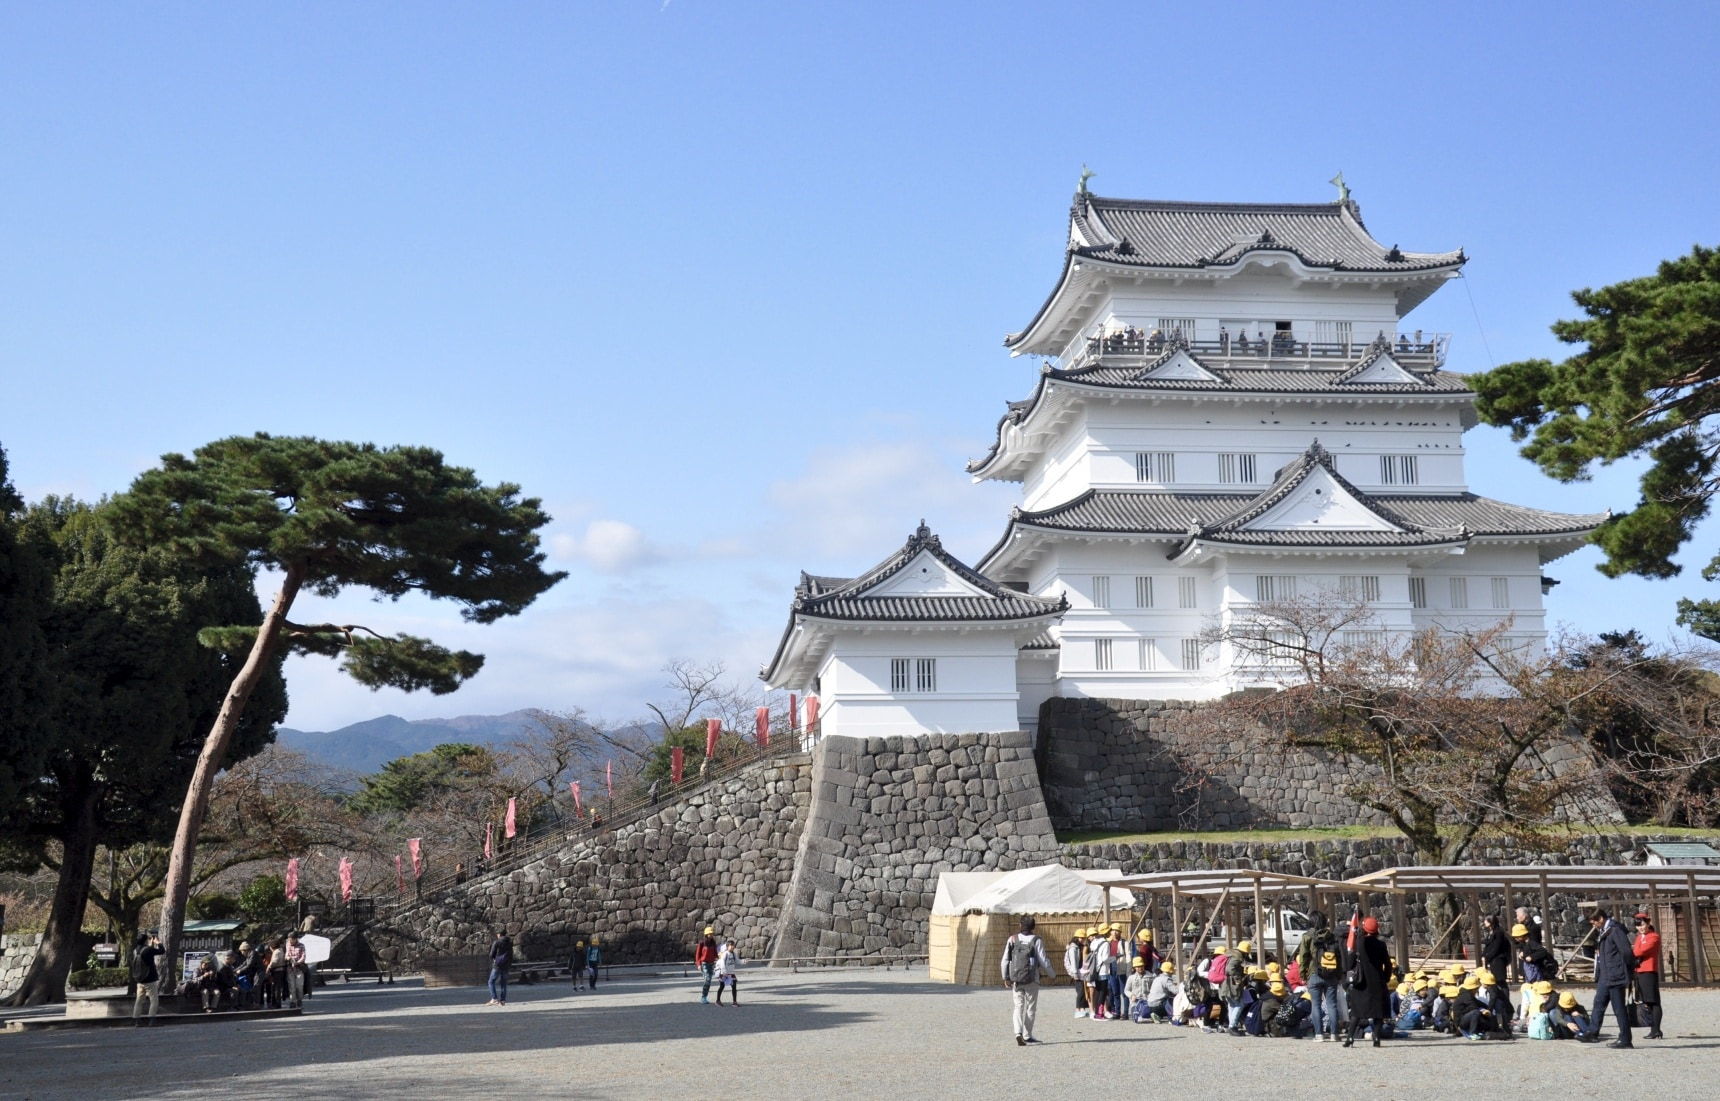 Odawara Castle: Last Stand of the Old Order